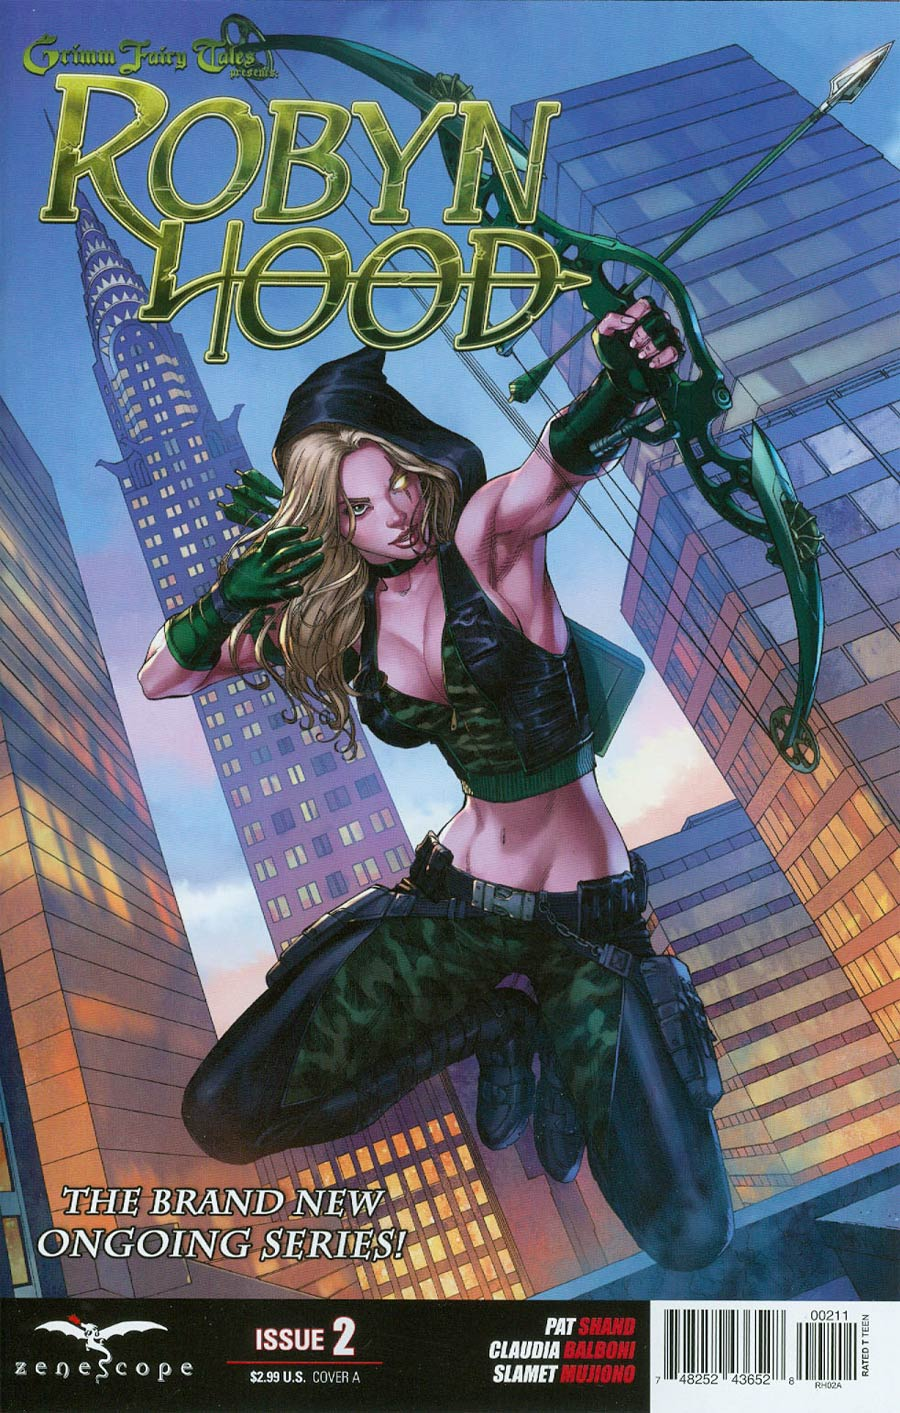 Grimm Fairy Tales Presents Robyn Hood Vol 2 #2 Cover A Mike S Miller